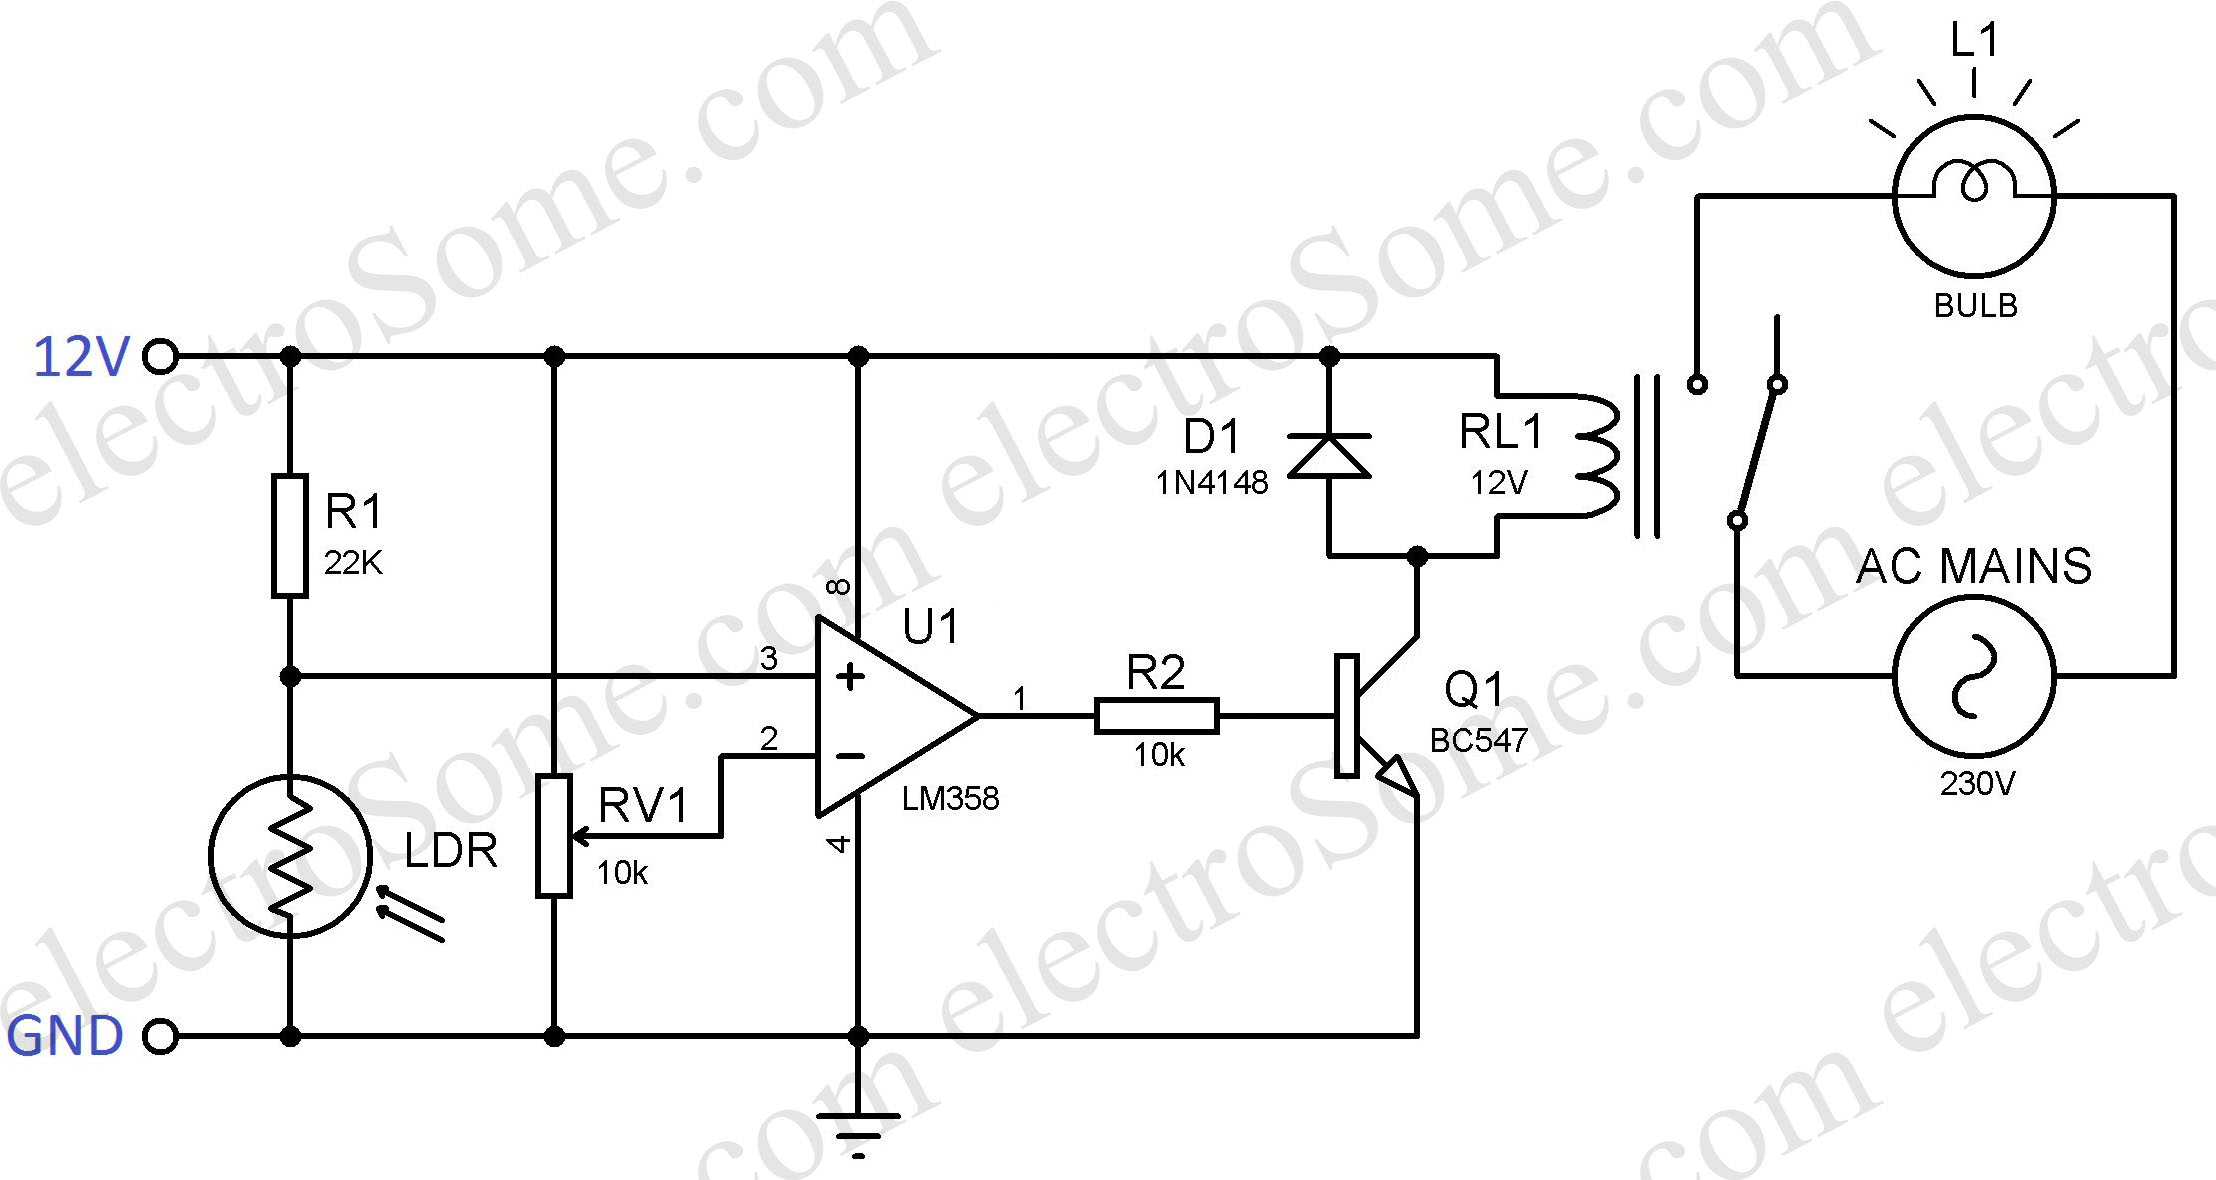 Automatic Night Lamp Using Ldr 9v Negative Power Supply Units Electronic Projects Circuits Circuit Diagram